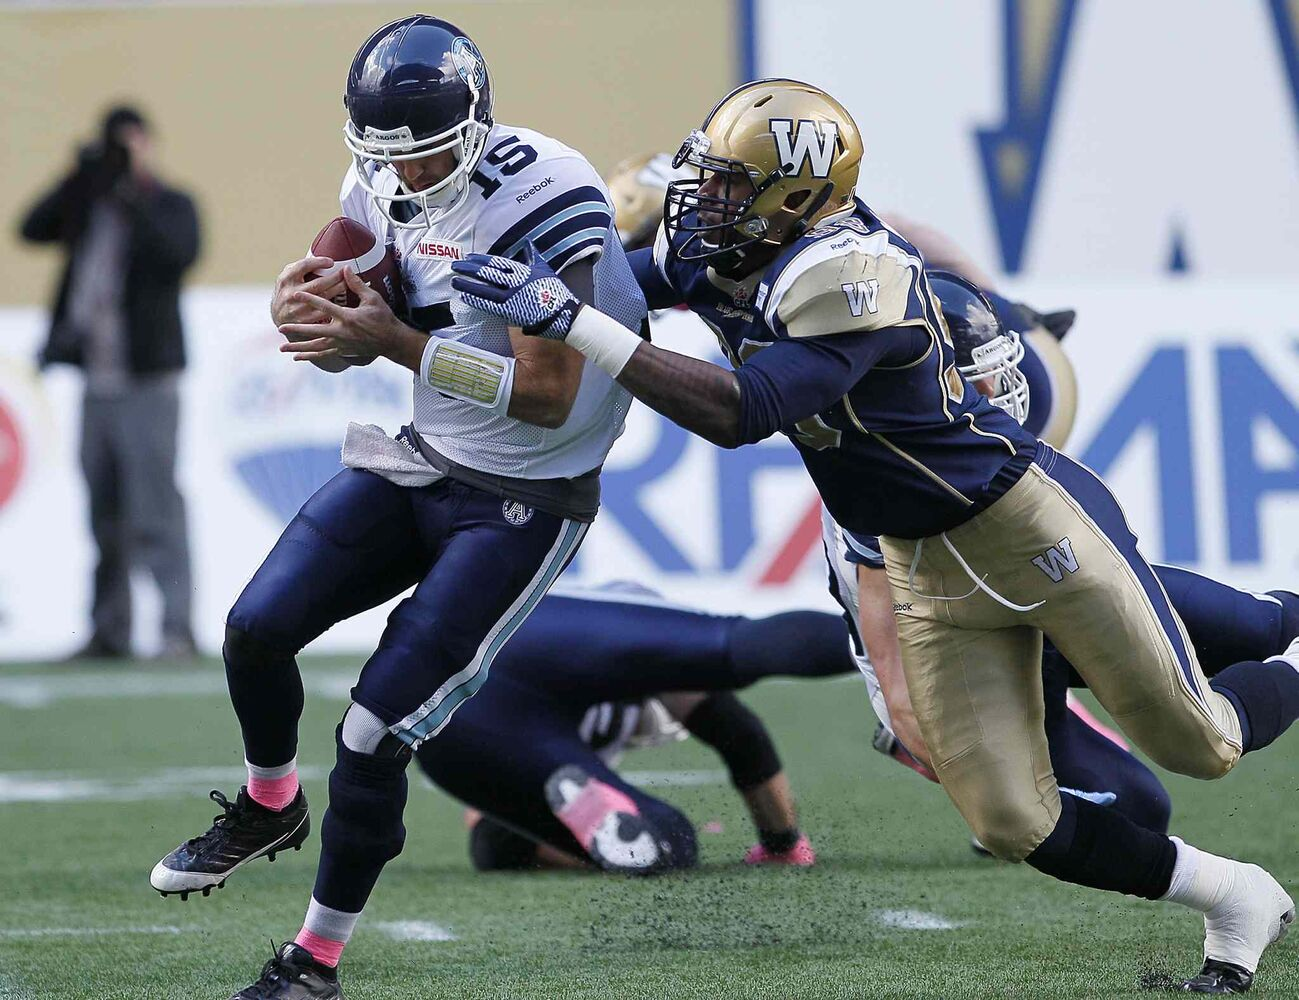 Toronto Argonauts' quarterback Ricky Ray (15) gets sacked by Winnipeg Blue Bombers' Michael McAdoo (98) during the first half.